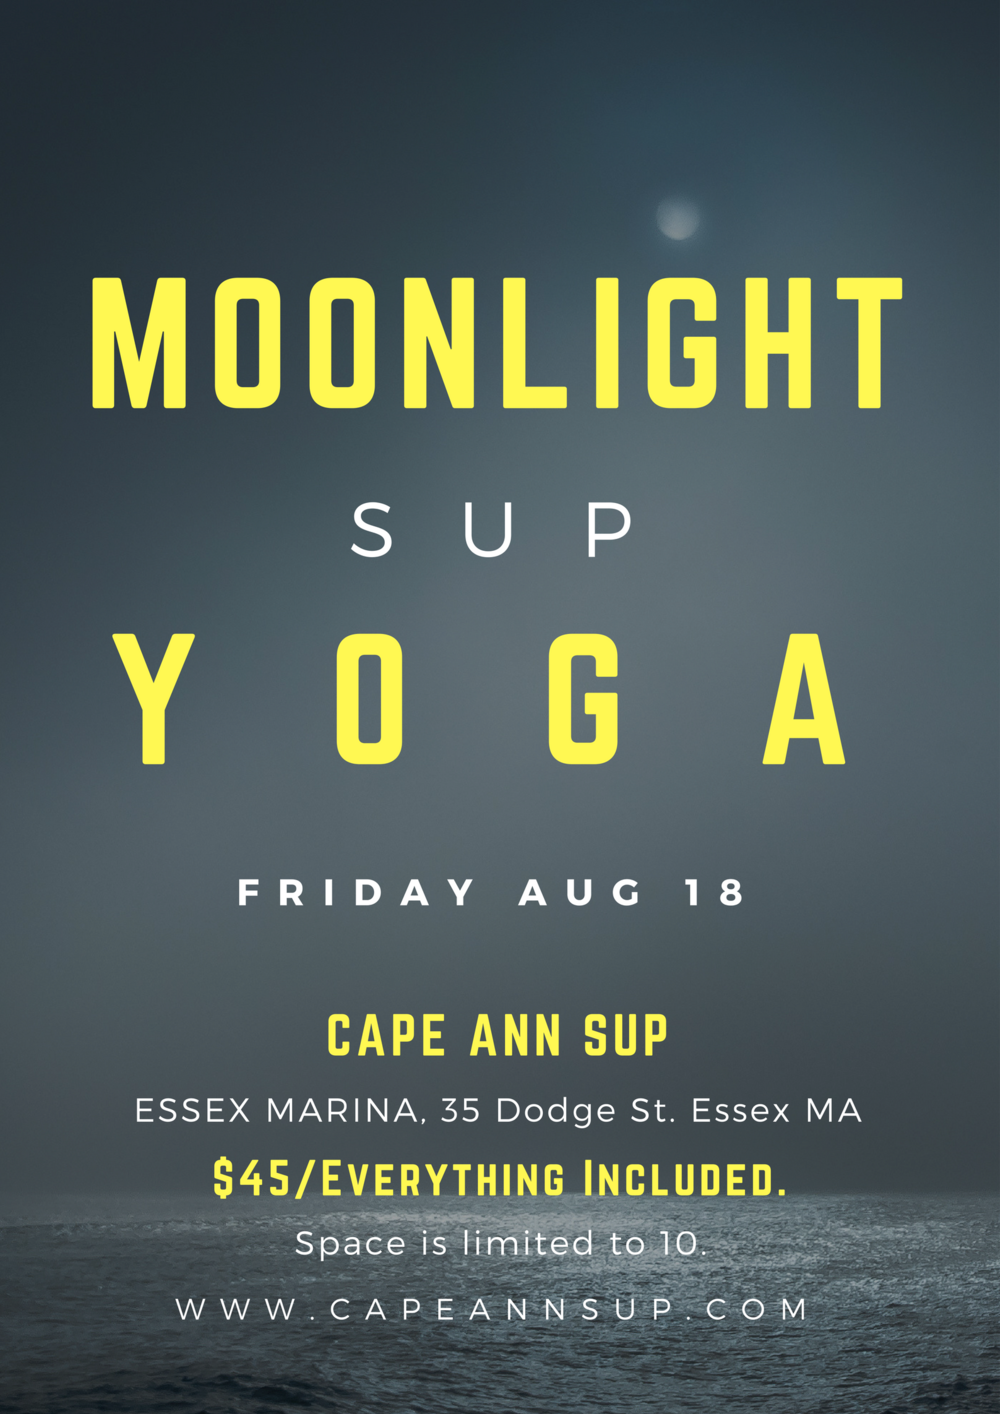 Moonlight SUP Yoga